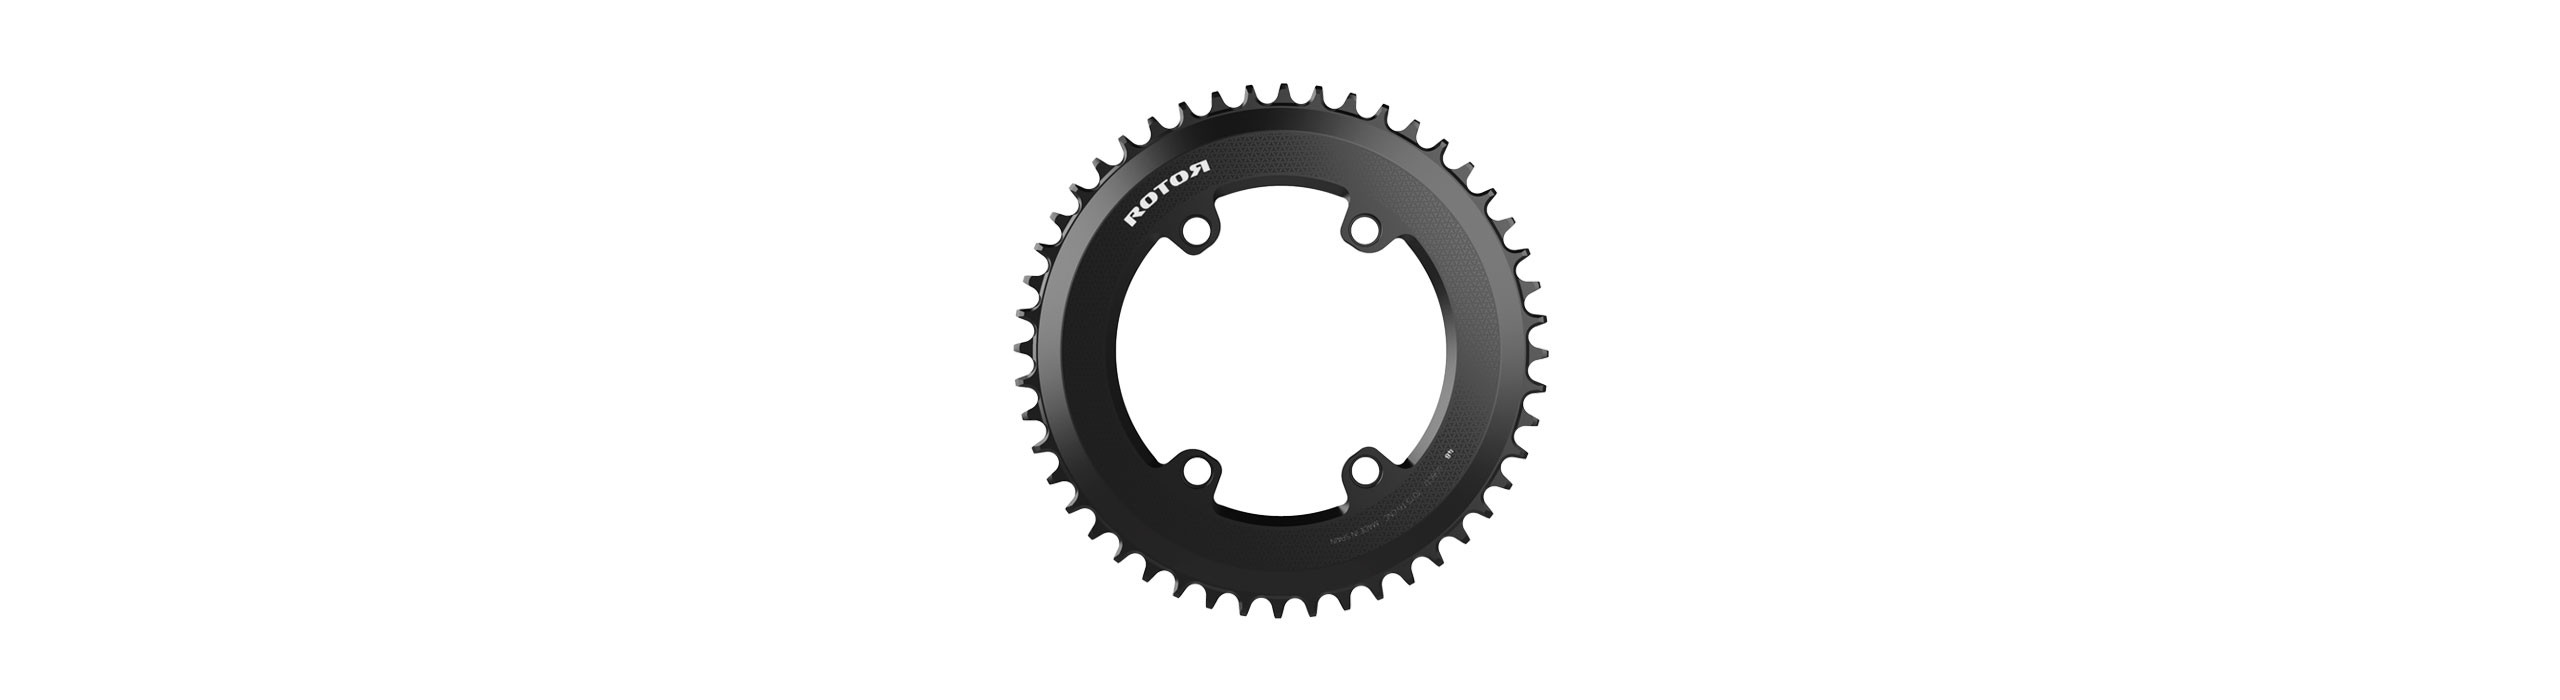 ROUND SPIDER MOUNT CHAINRINGS BCD110x4 AERO 1x